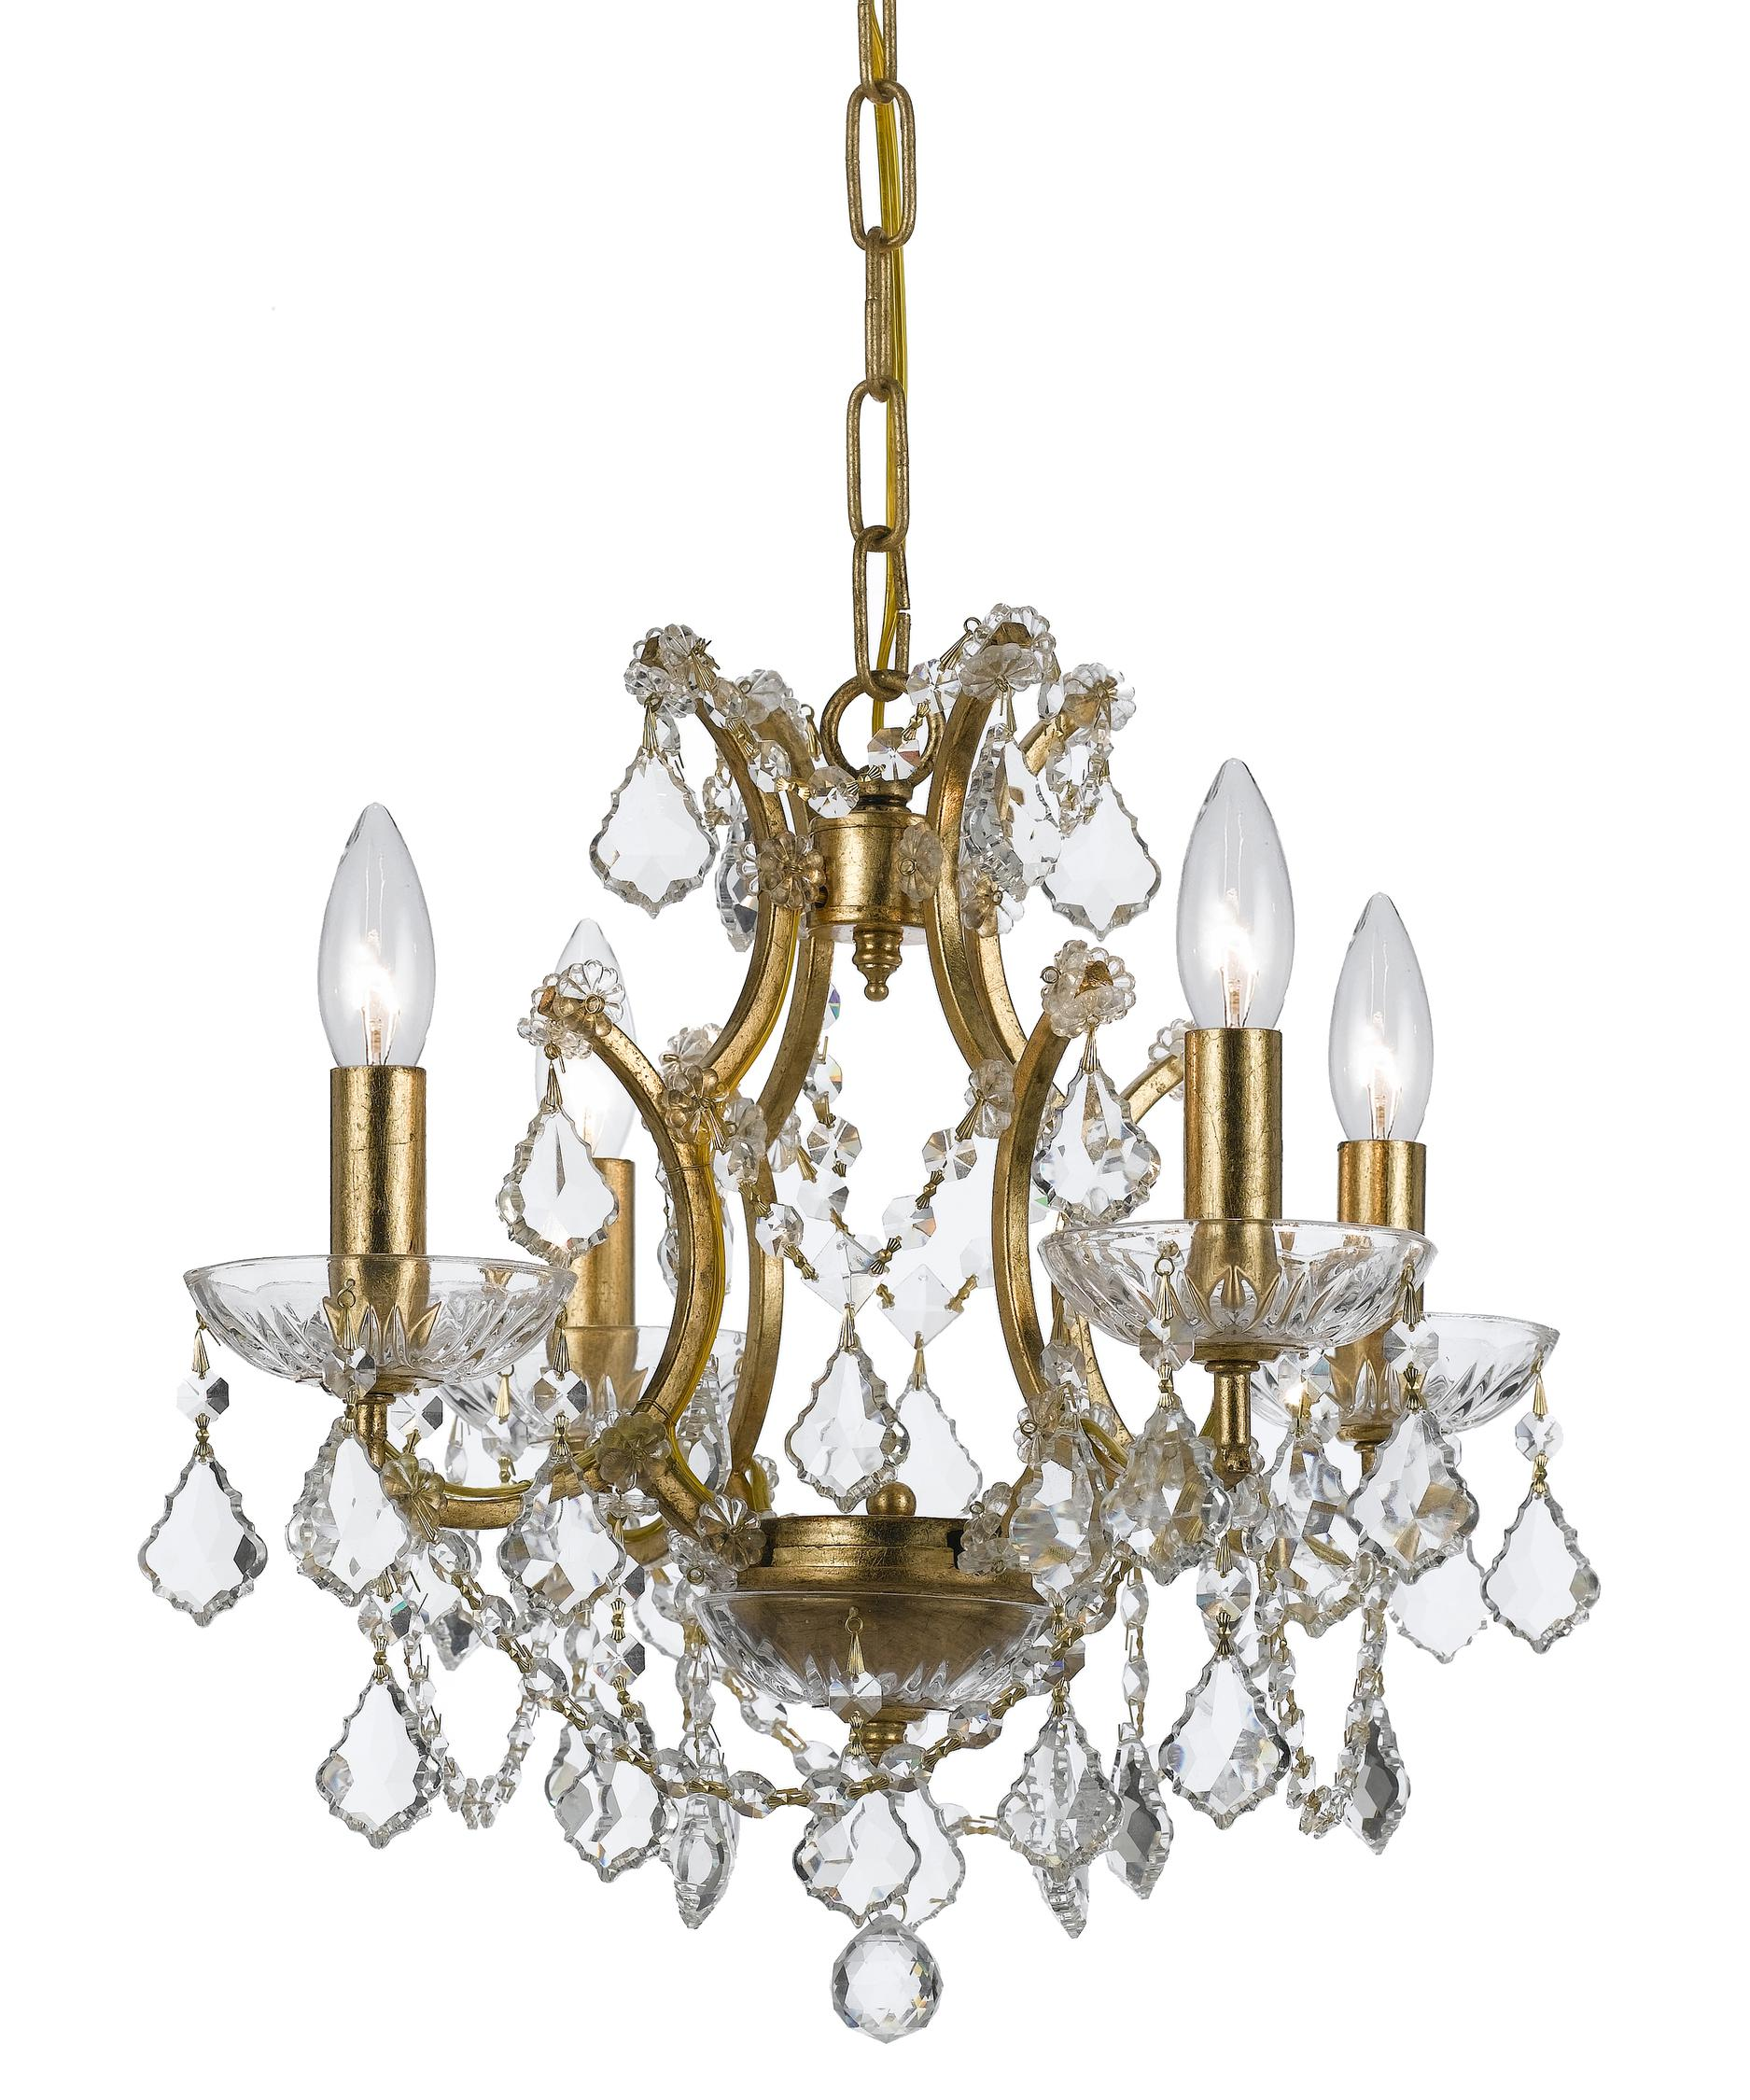 Crystorama Filmore 18 Inch Wide 4 Light Mini Chandelier – Crystorama Chandeliers